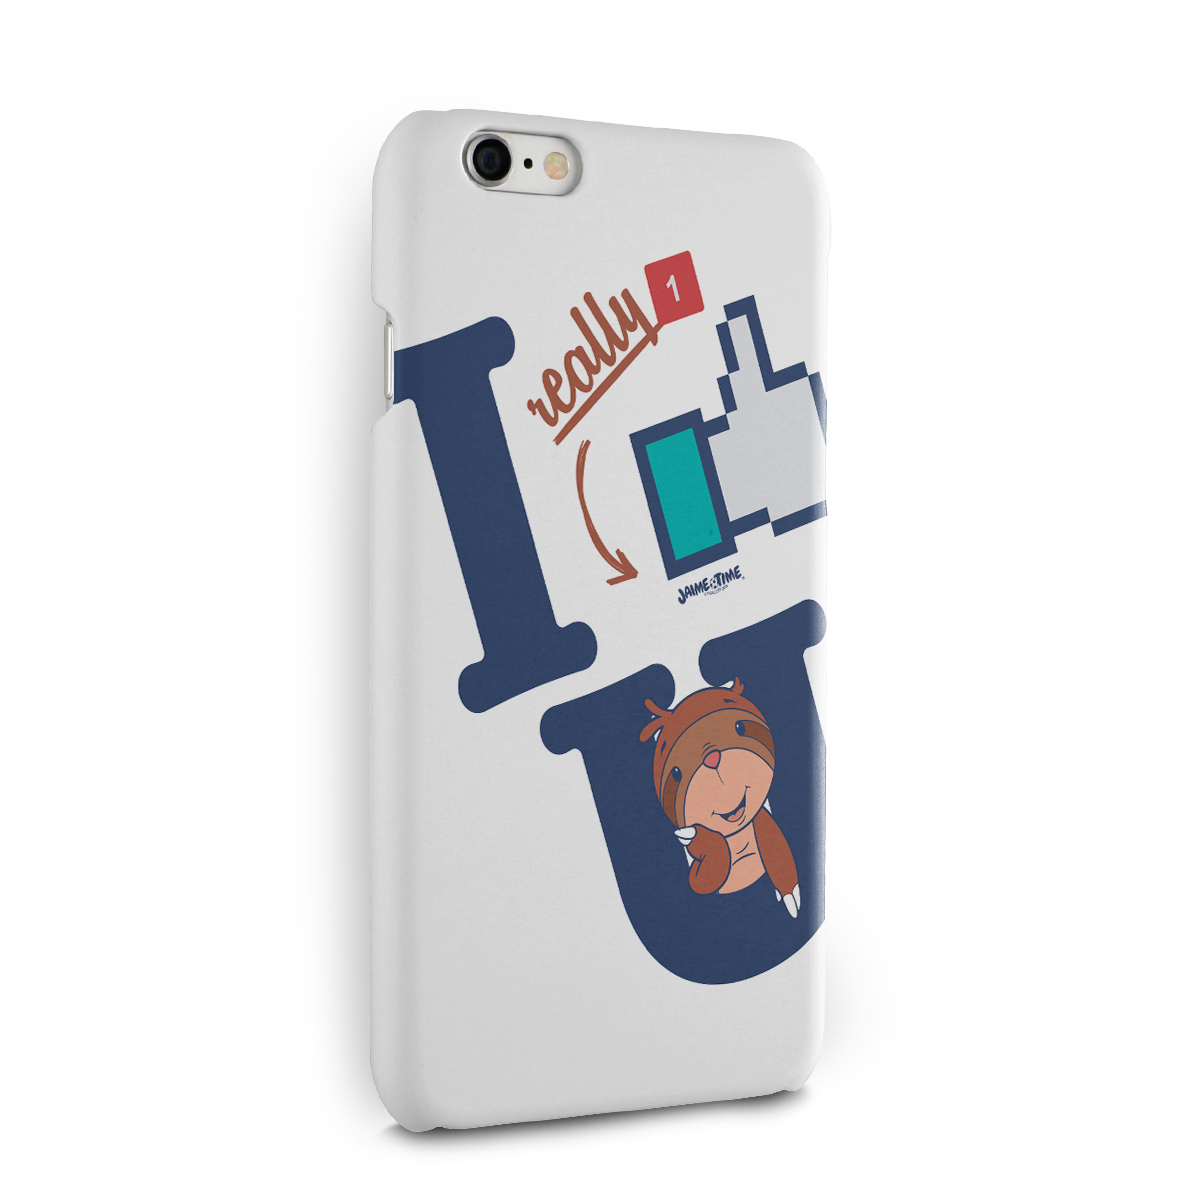 Capa para iPhone 6/6S Jaime I Like You